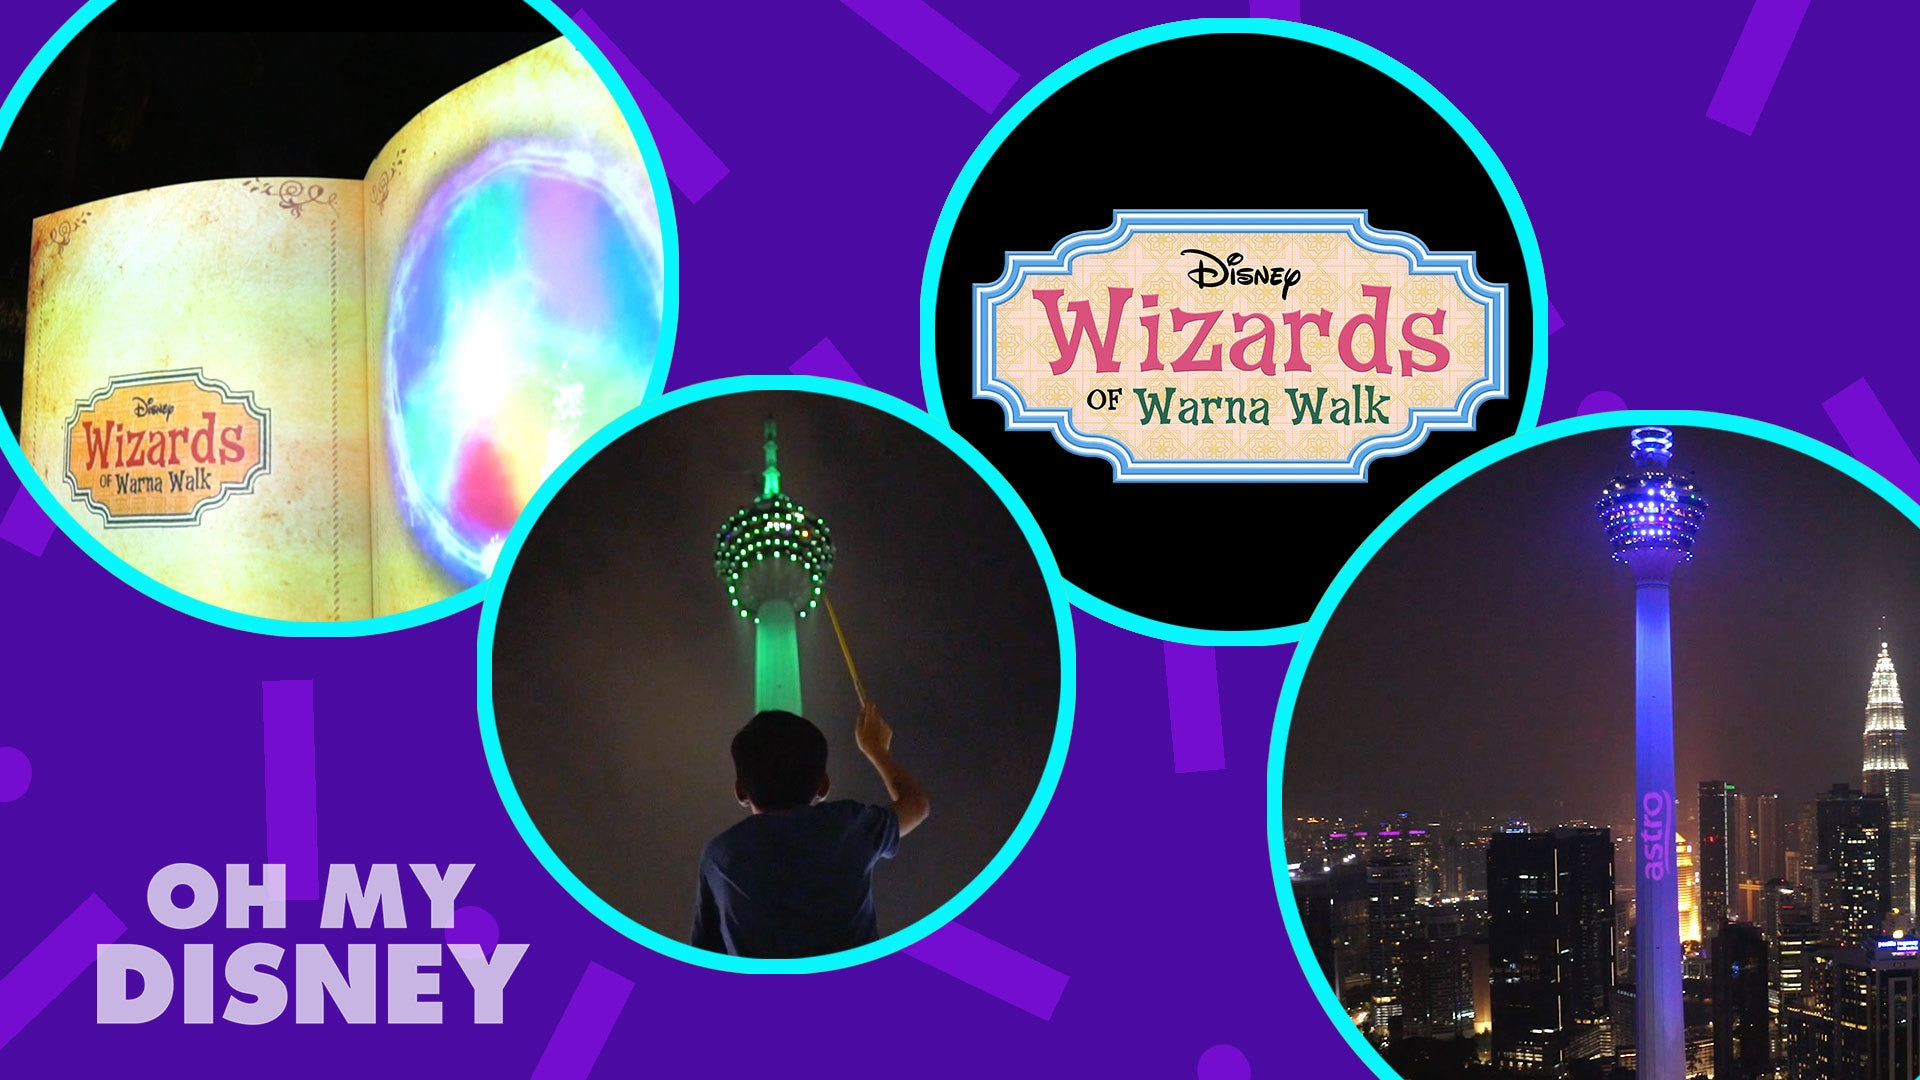 Disney Channel's Wizards Of Warna Walk Casts A Spell On KL Tower!